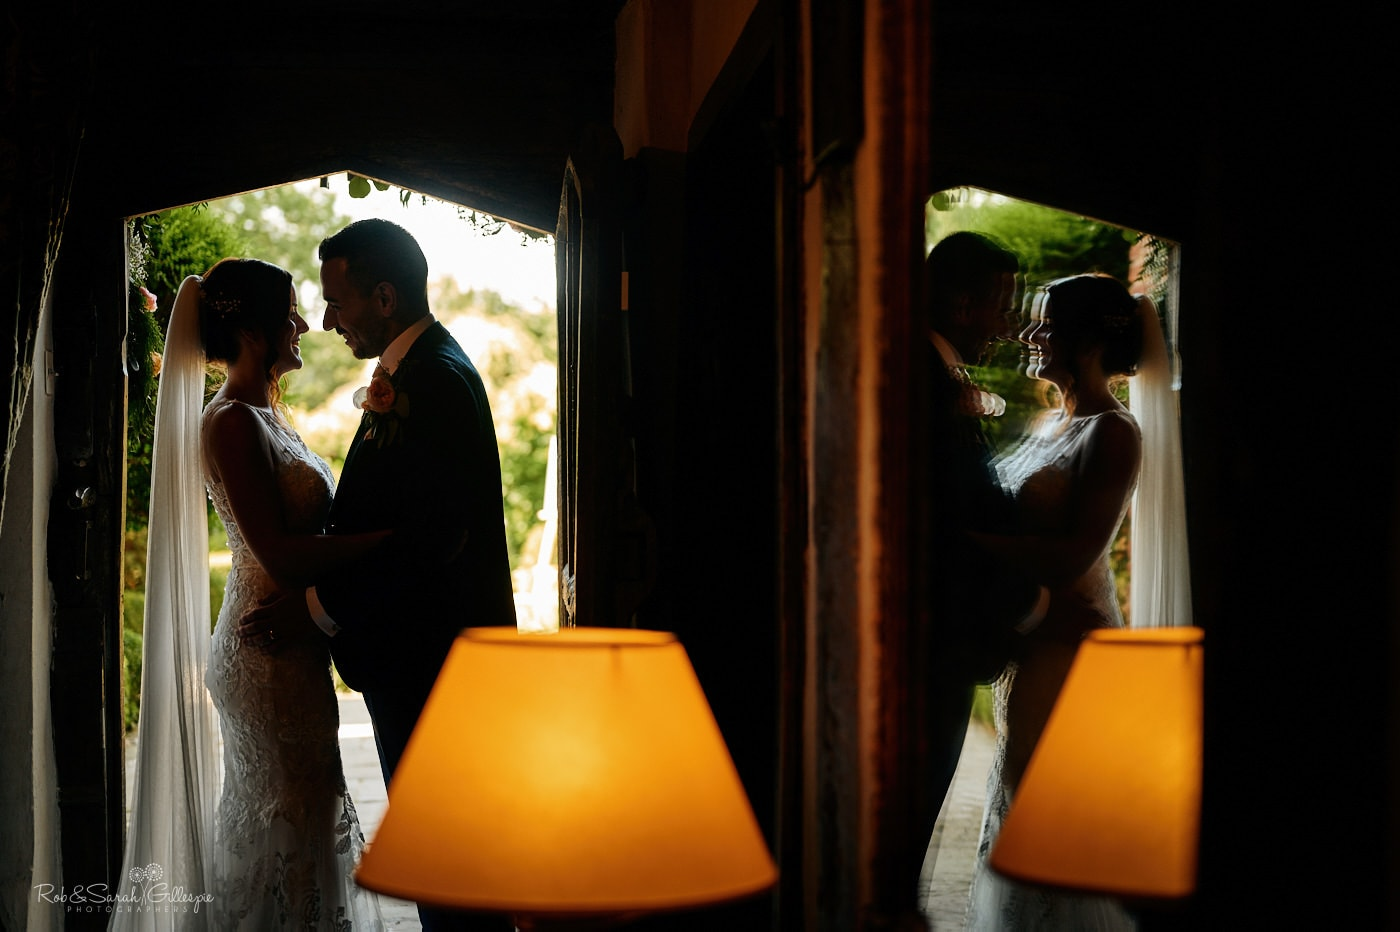 Bride and groom in doorway at Gorcott Hall, silhouetted by afternoon sun